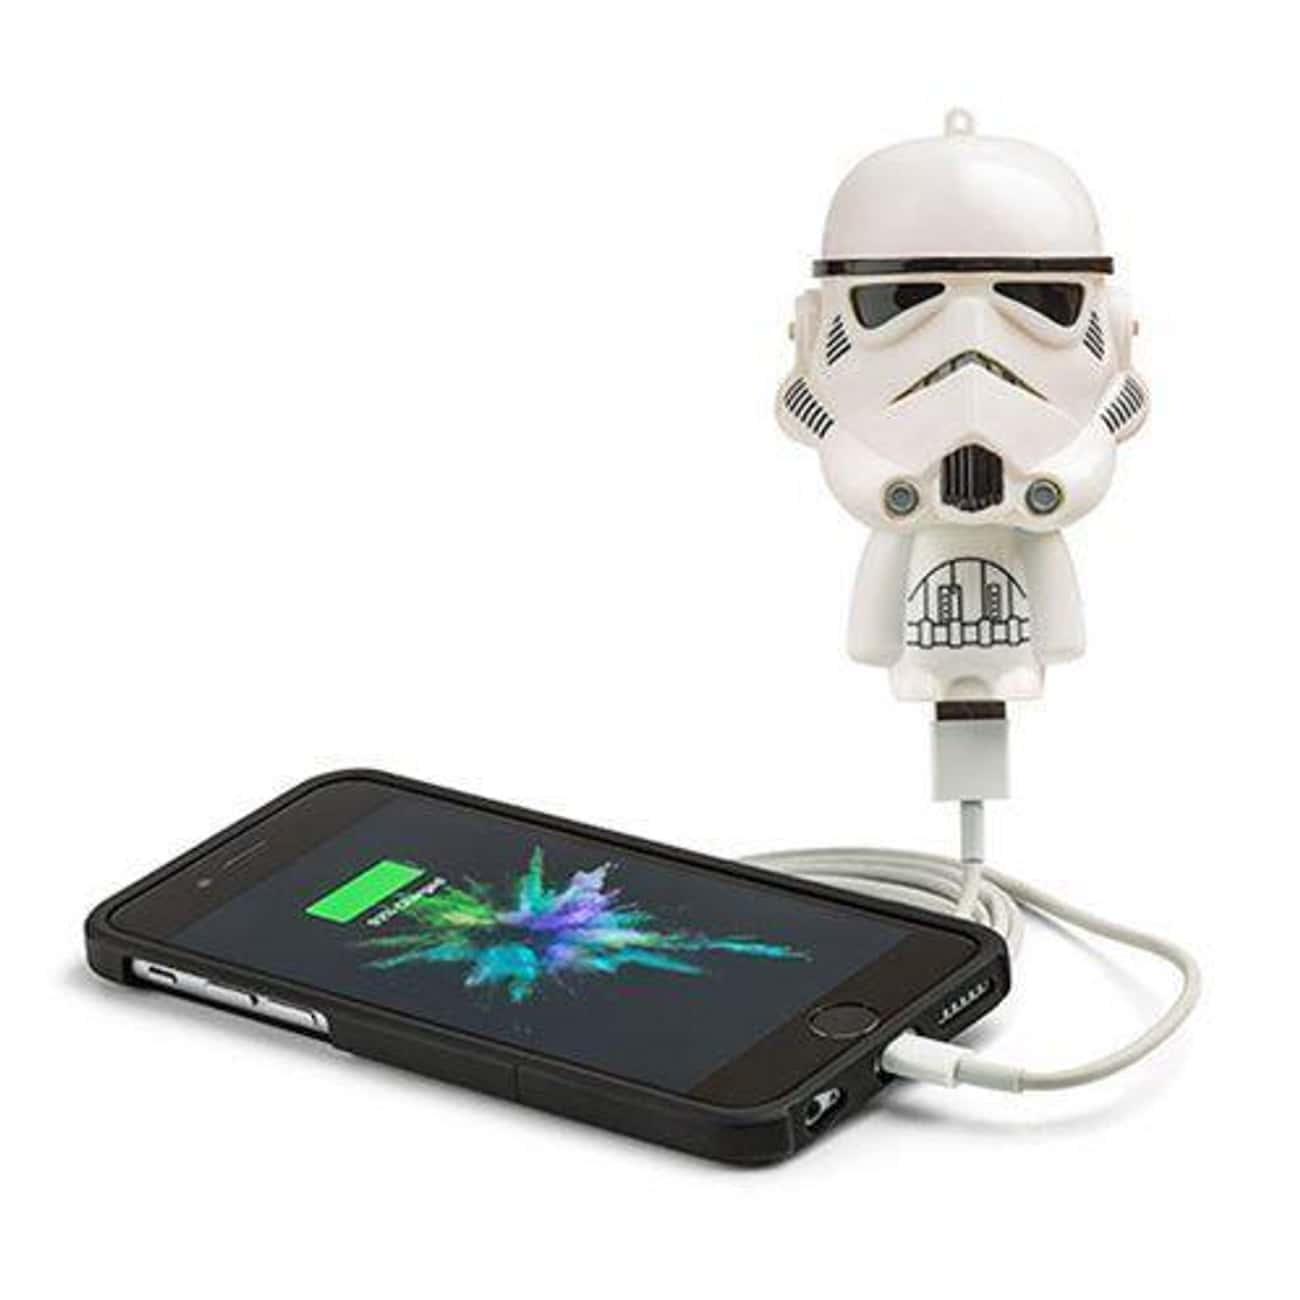 Mighty Mini Stormtrooper Perso is listed (or ranked) 2 on the list 19 Gifts For Your Friend Who's Really Into Star Wars: The Last Jedi